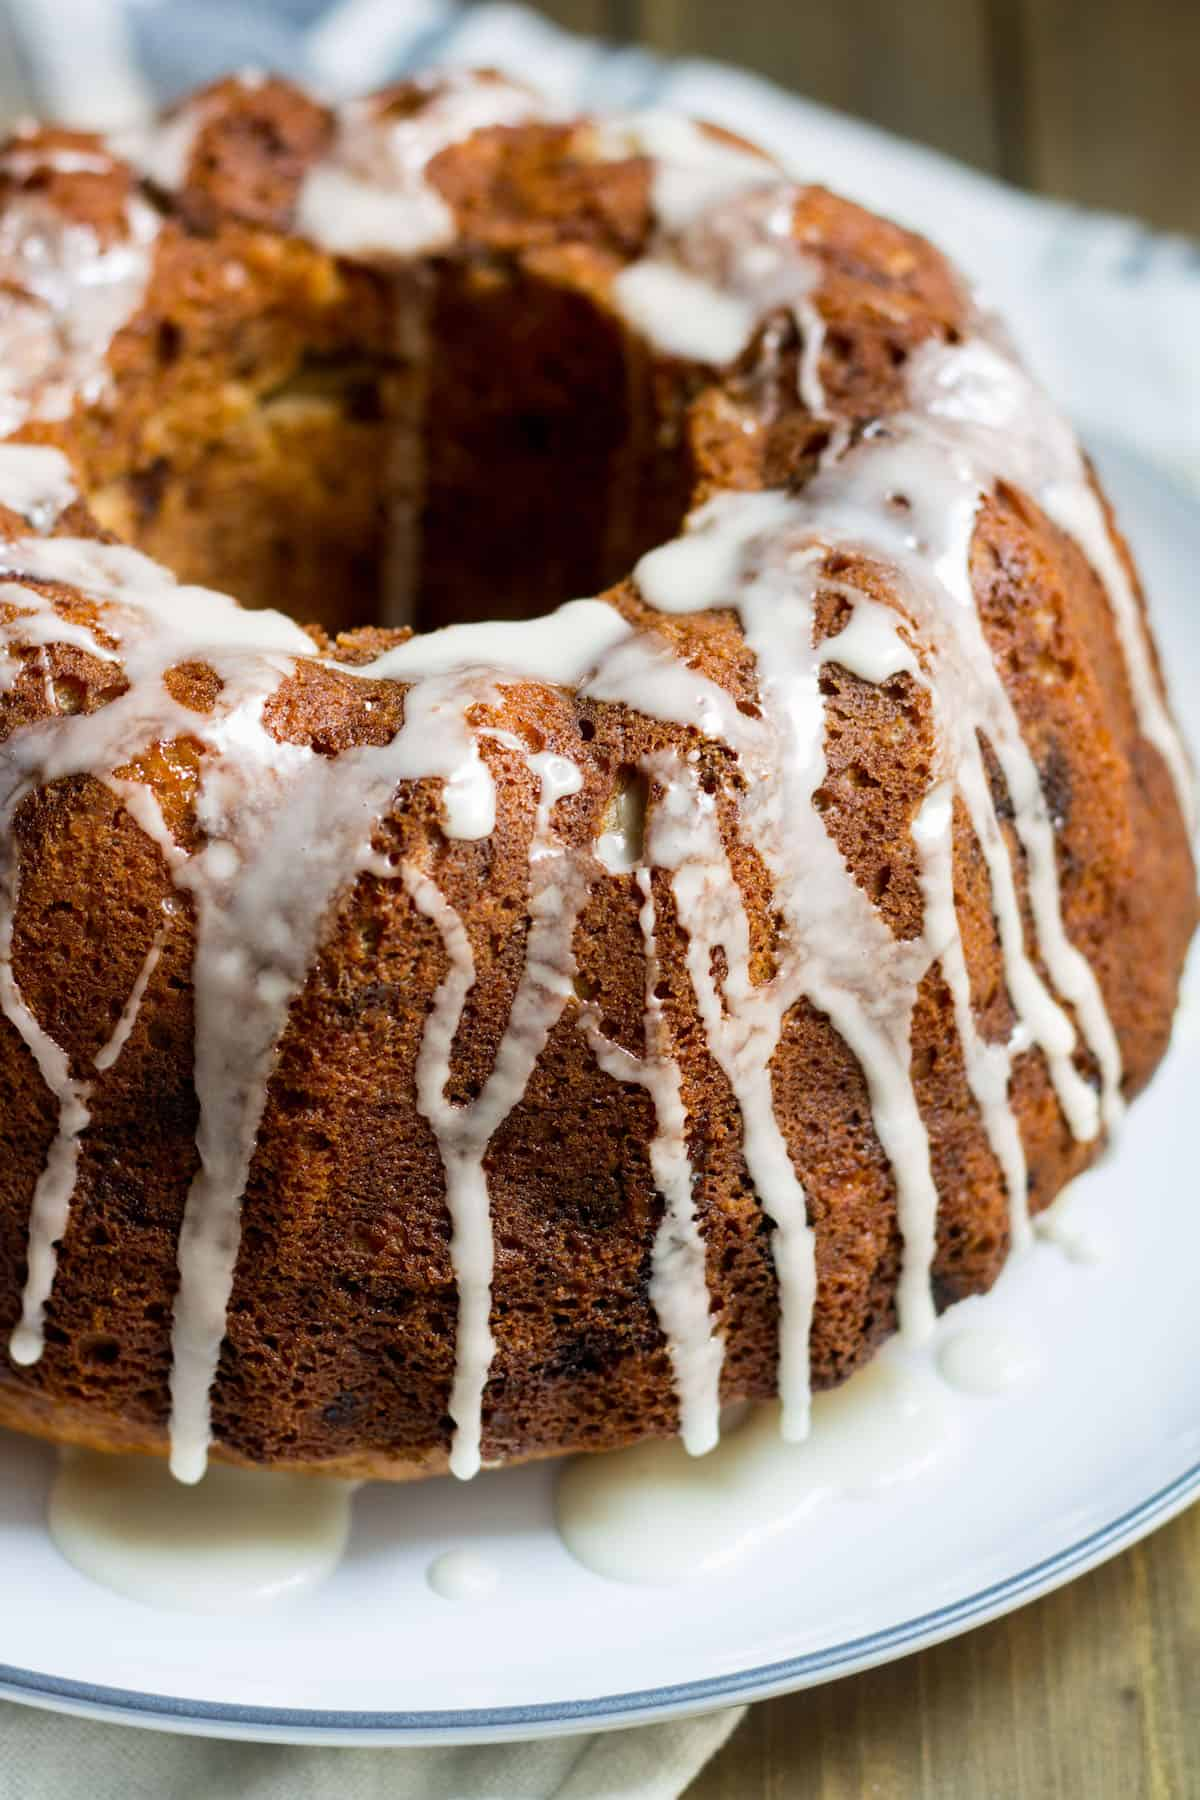 Apple Bundt Cake: a delicious and easy fall cake recipe made with apples, bananas, and fall spices. Recipe via MonPetitFour.com